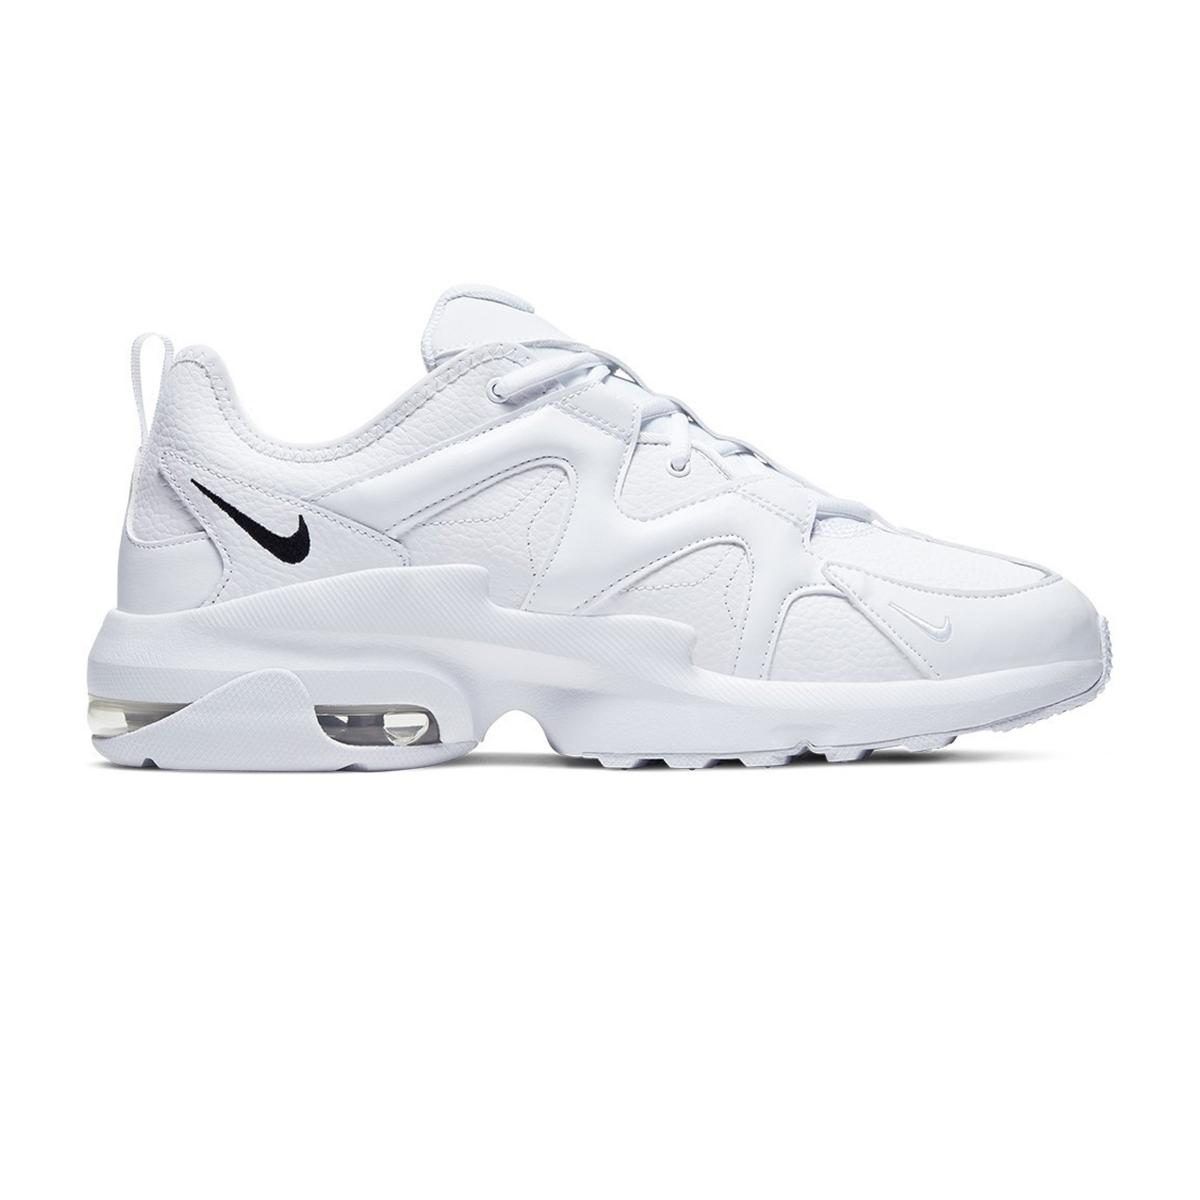 Scarpe Sneakers Nike Air Max Graviton Leather da uomo rif. CD4151-100